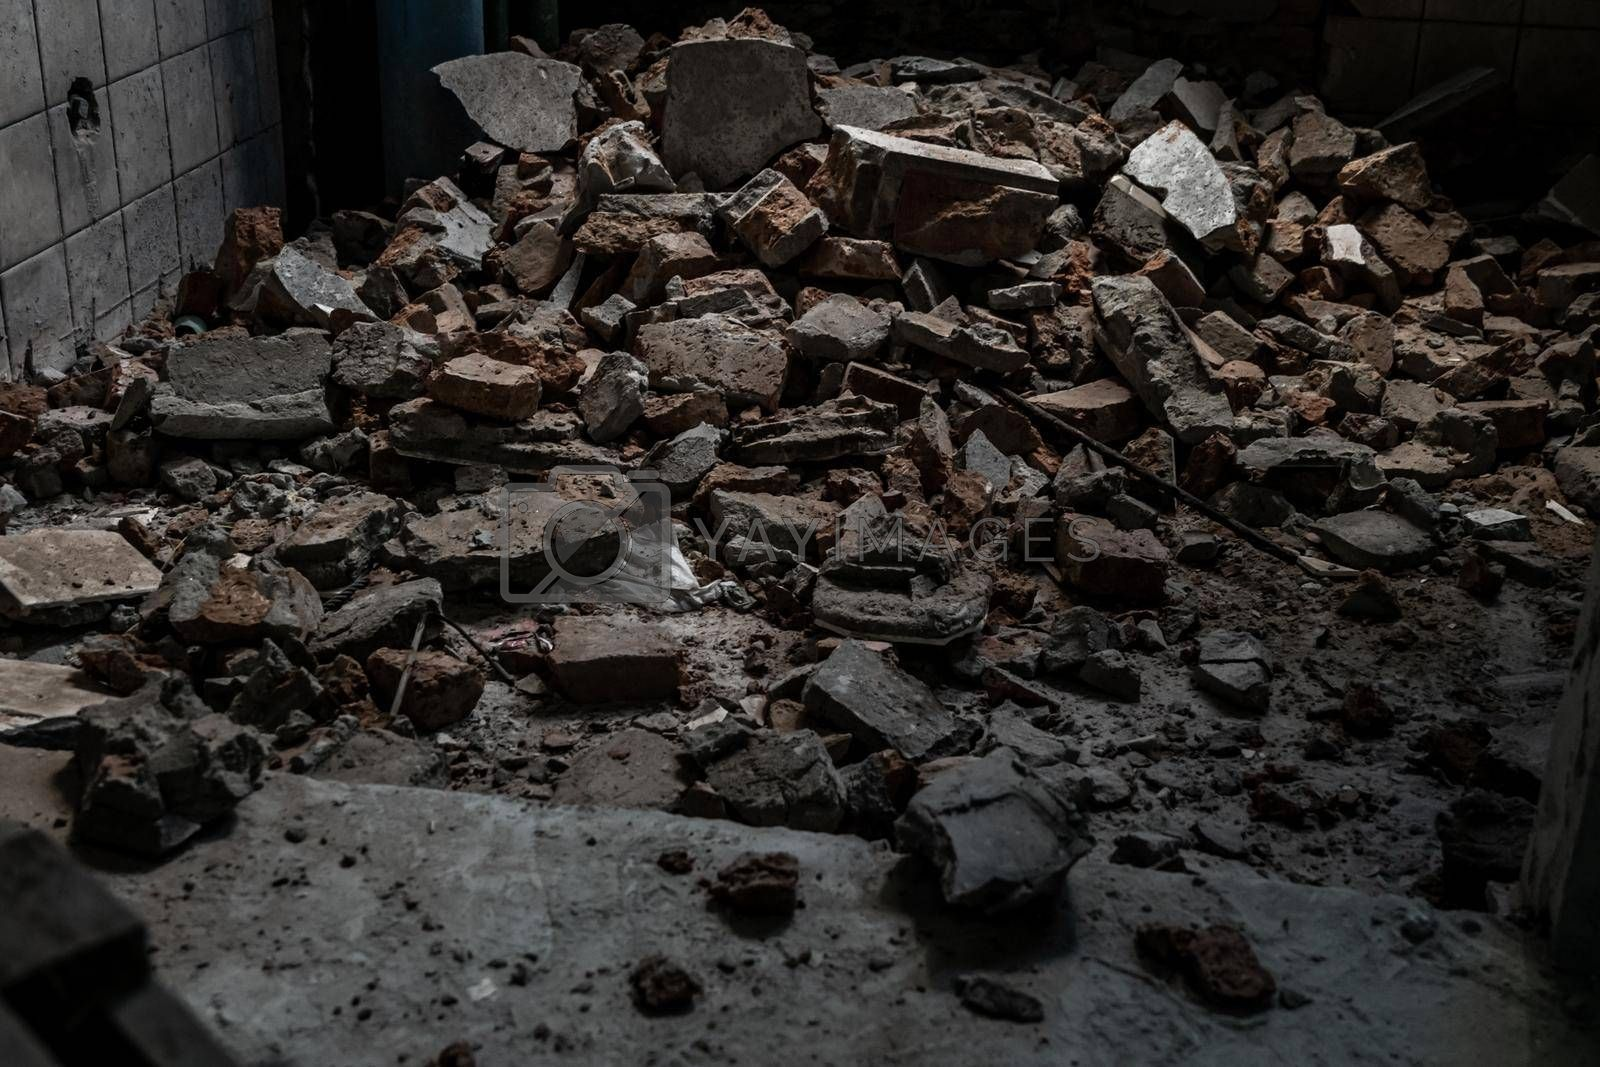 The rubble, A pile of smashed cement stacked together of Deteriorated abandoned old building, Destroyed building, Selective focus.